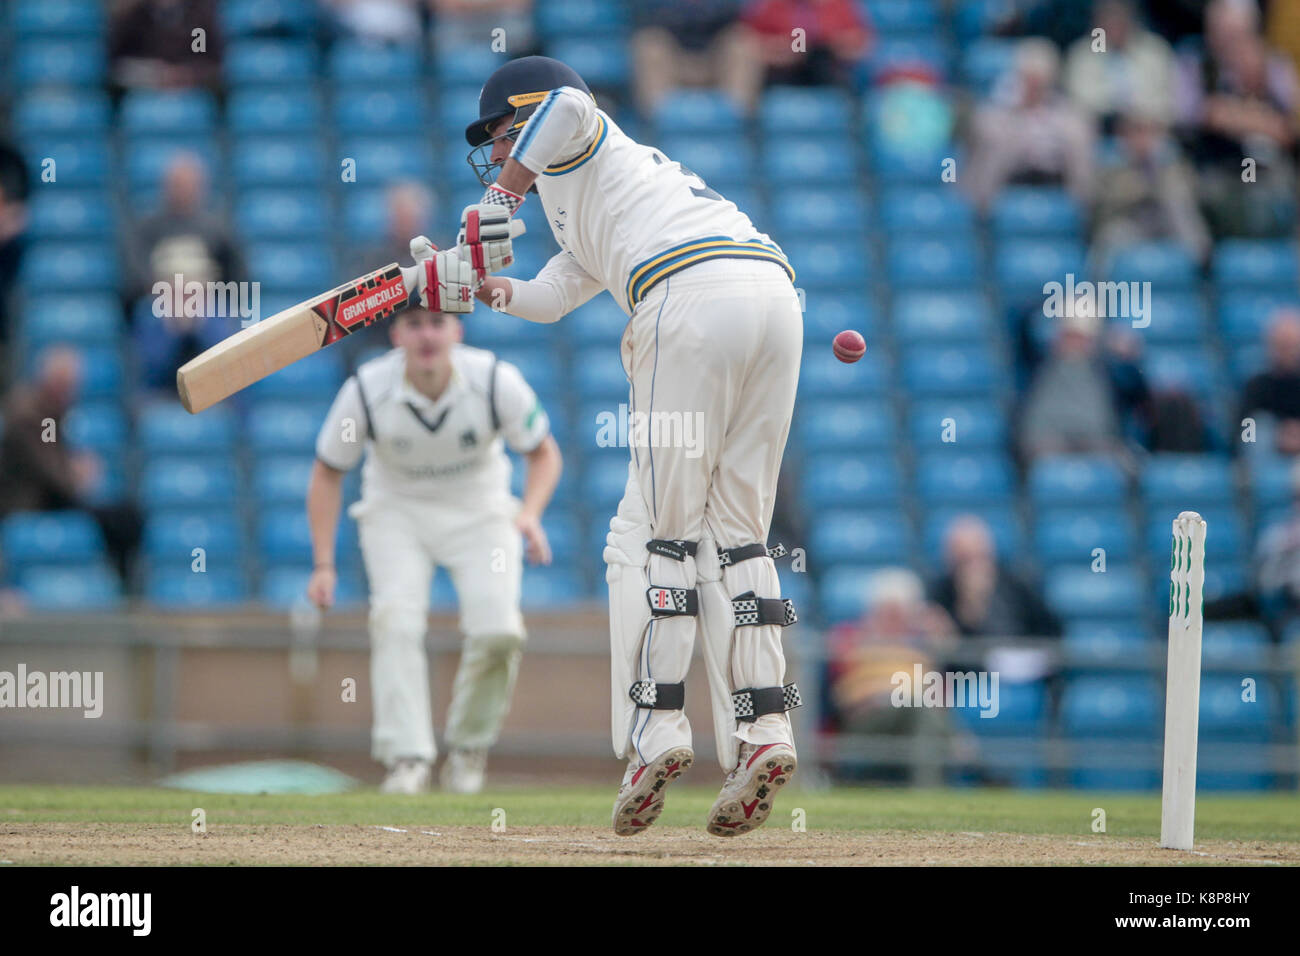 Leeds, UK. 20th Sep, 2017. Jack Leaning (Yorkshire CCC) jumps to play a shot Yorkshire CCC v Warwickshire CCC on - Stock Image